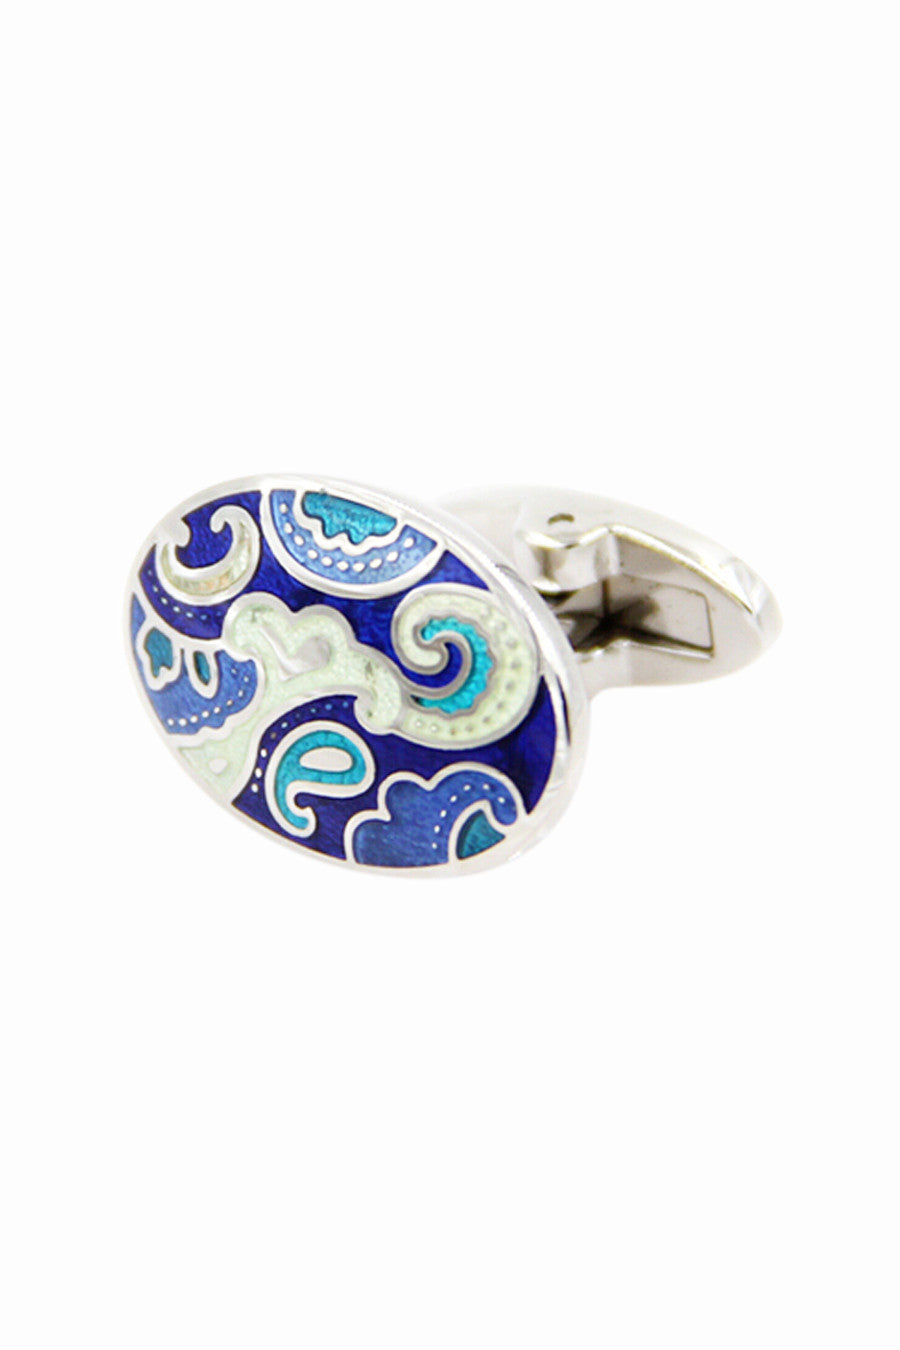 Lucky Clouds Men's Cufflinks